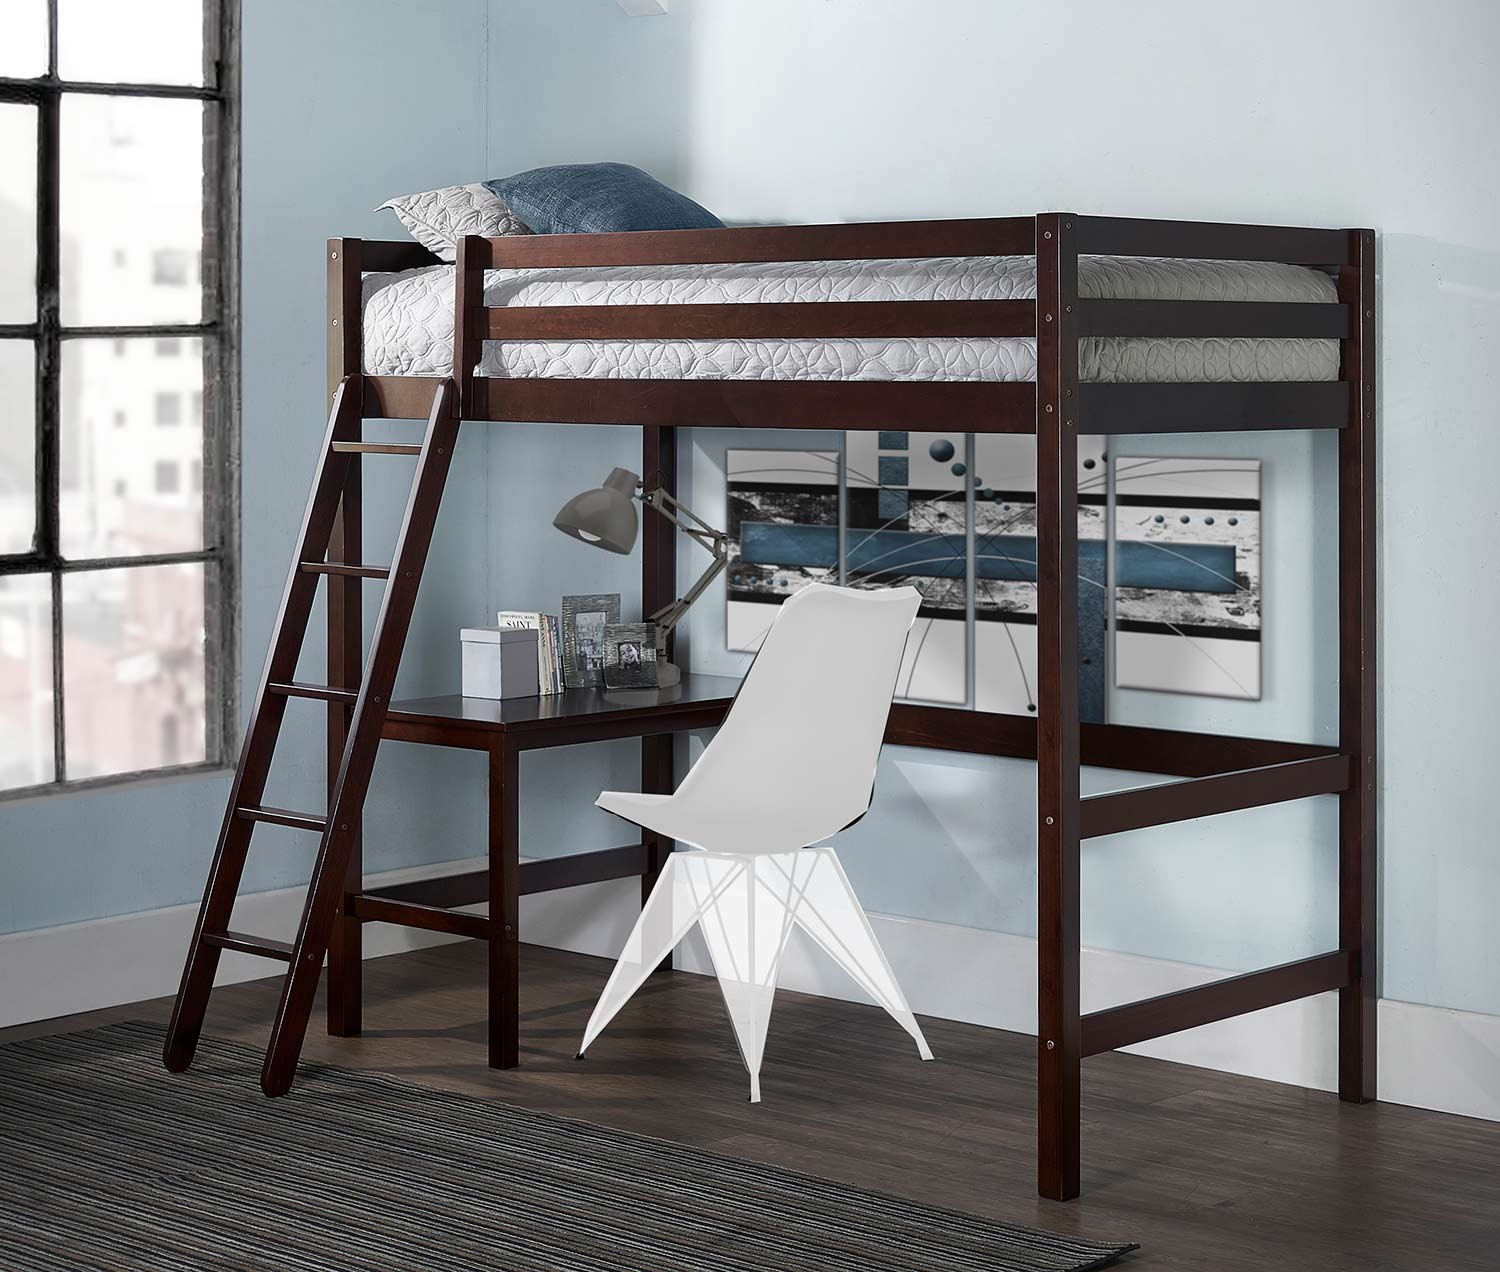 Hillsdale Caspian Twin Study Loft Bed - Chocolate